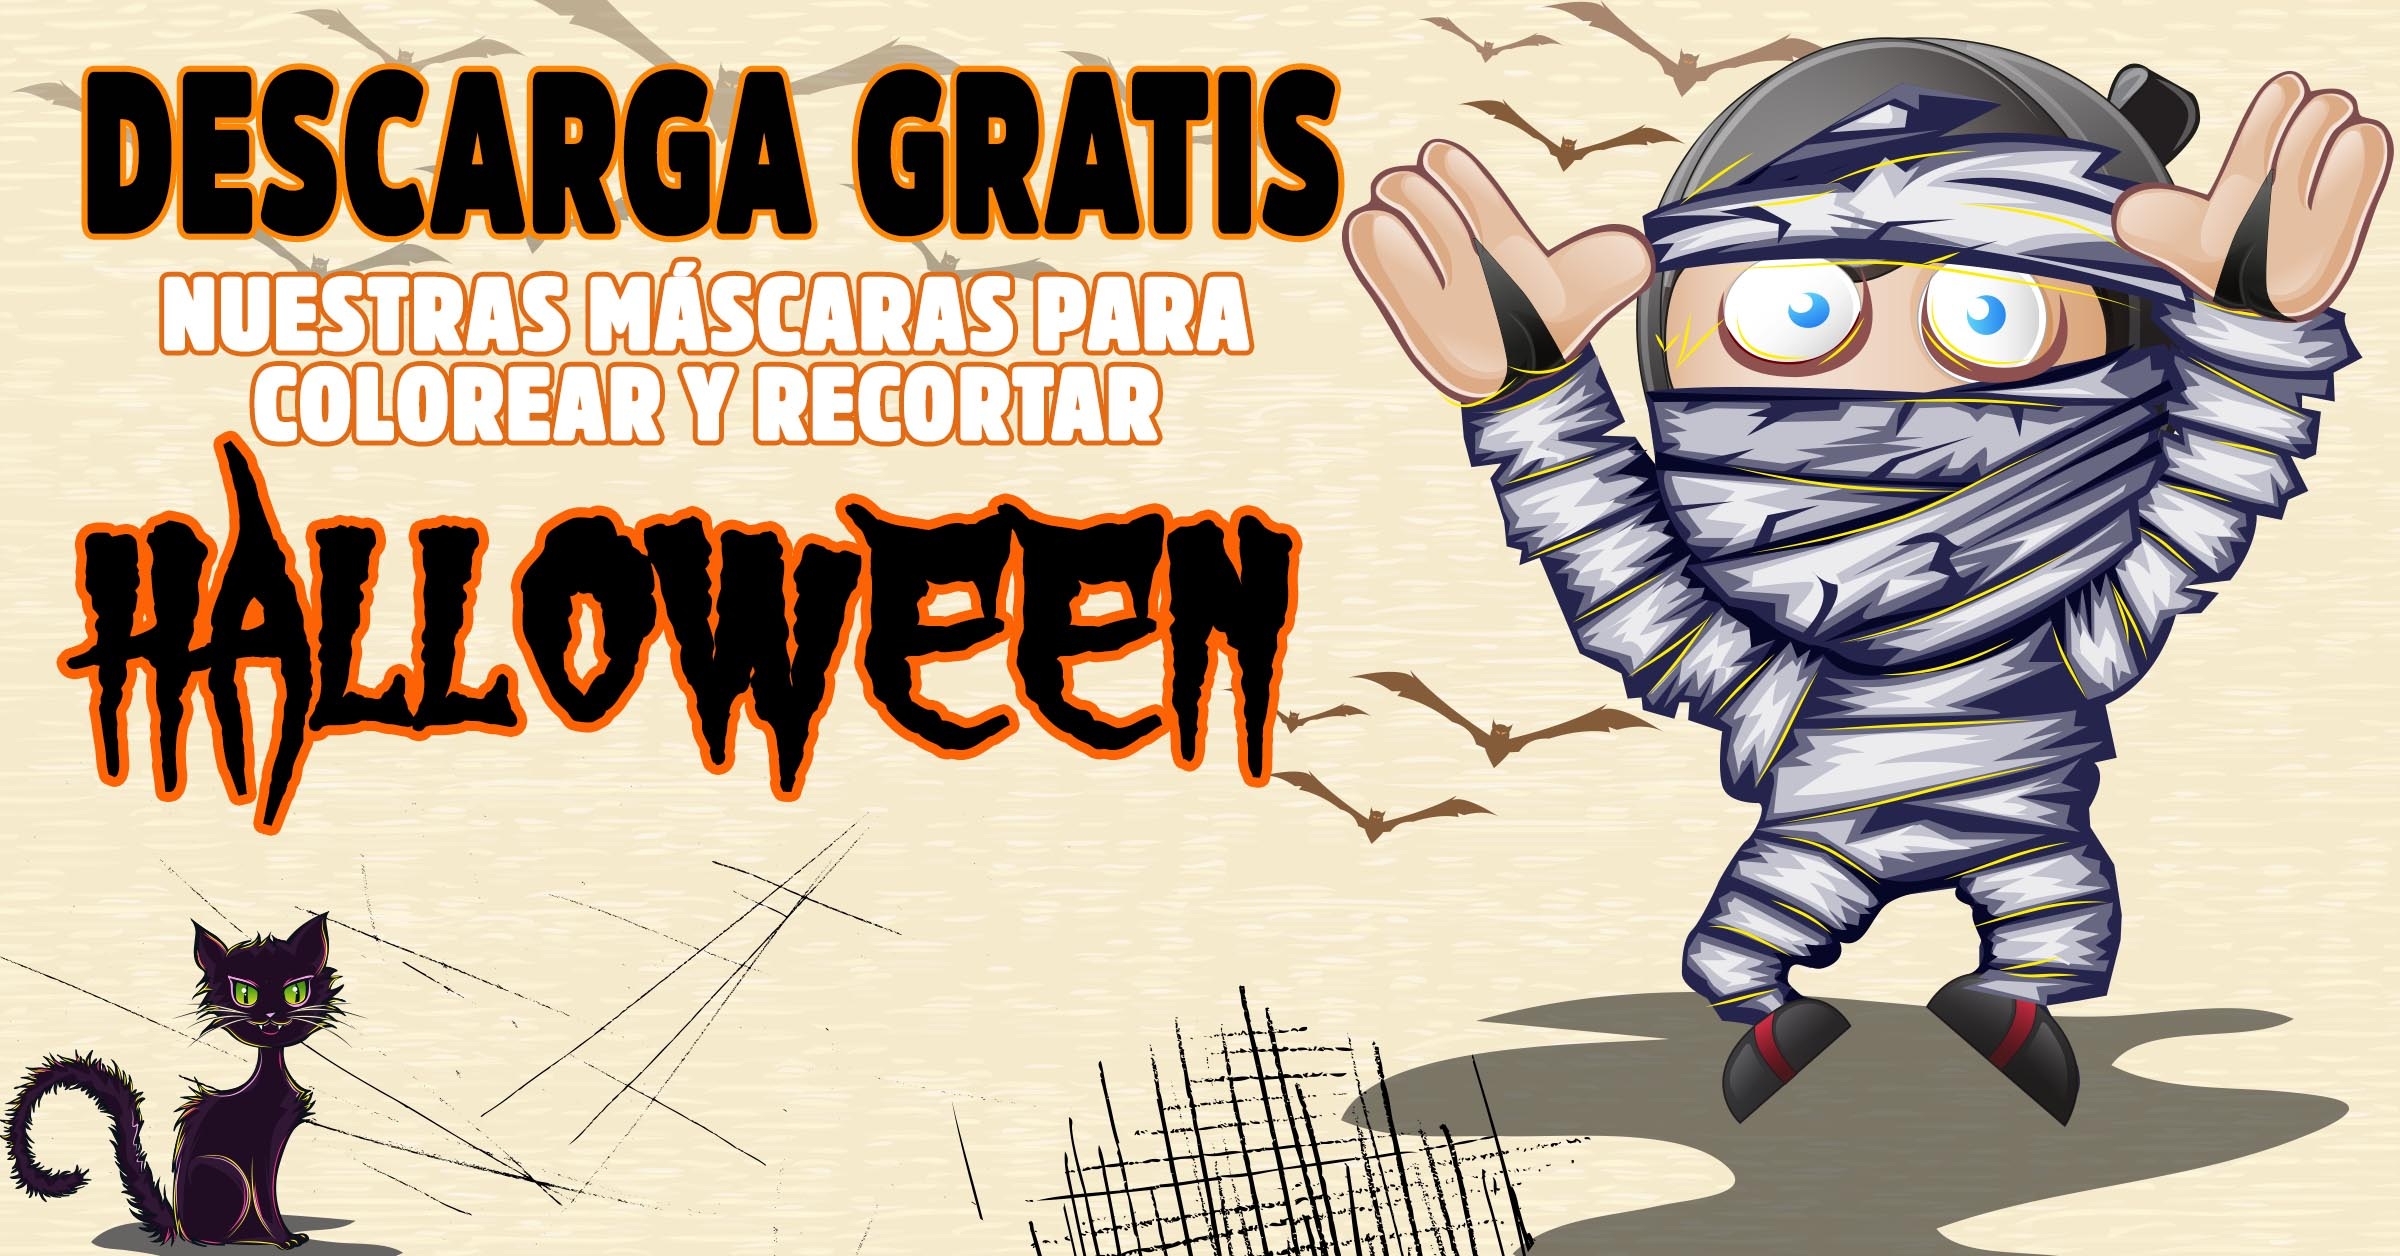 Descarga gratis mascaras de halloween